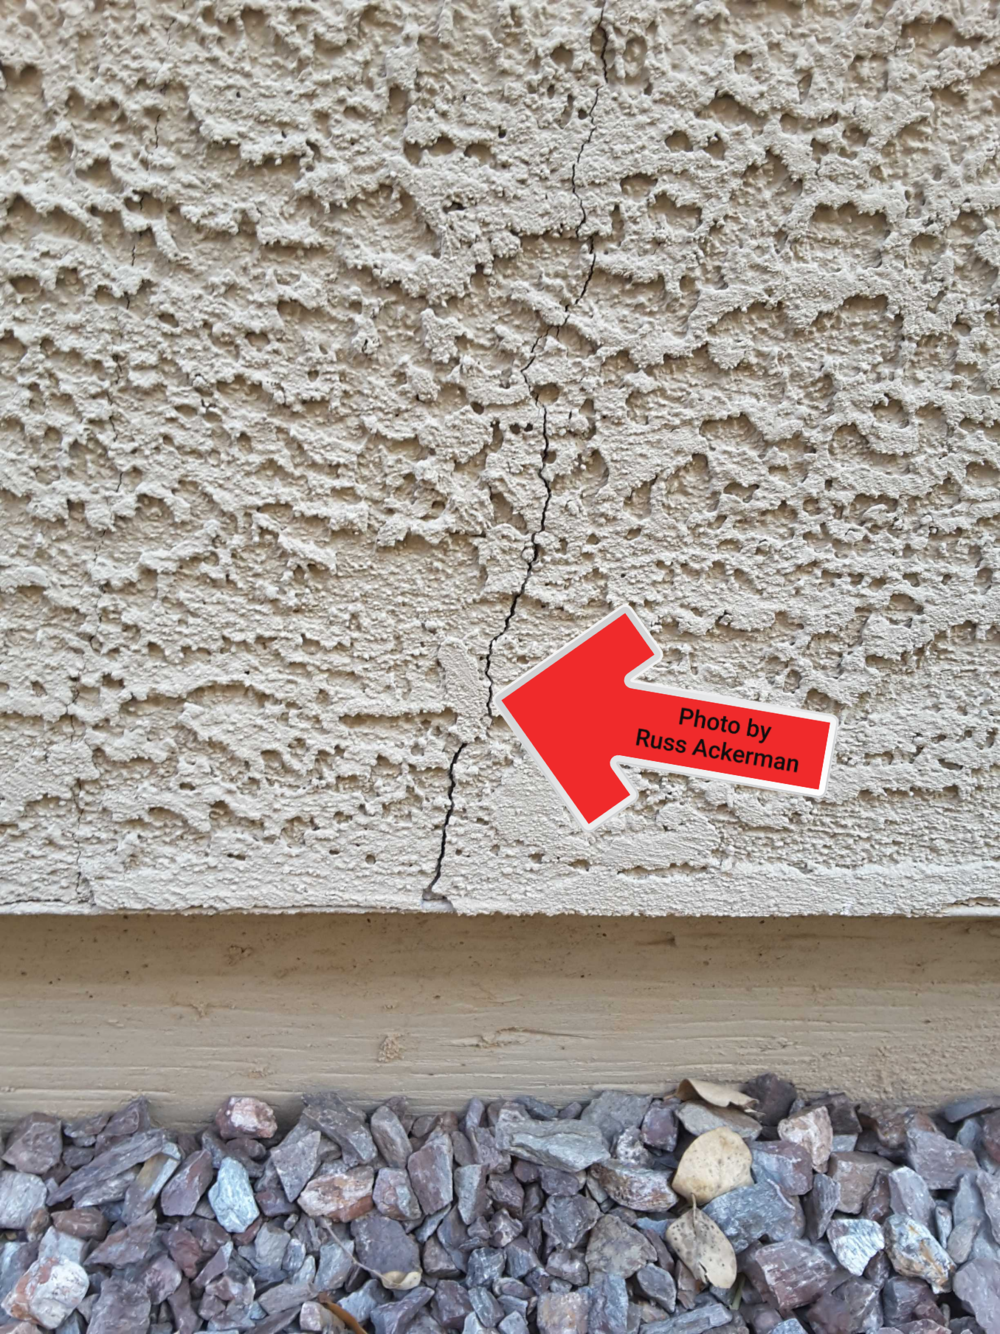 Stucco cracks are very common. A coat of paint is usually all that's needed for hairline cracks. Cracks thicker than the edge of a dime should be repaired.